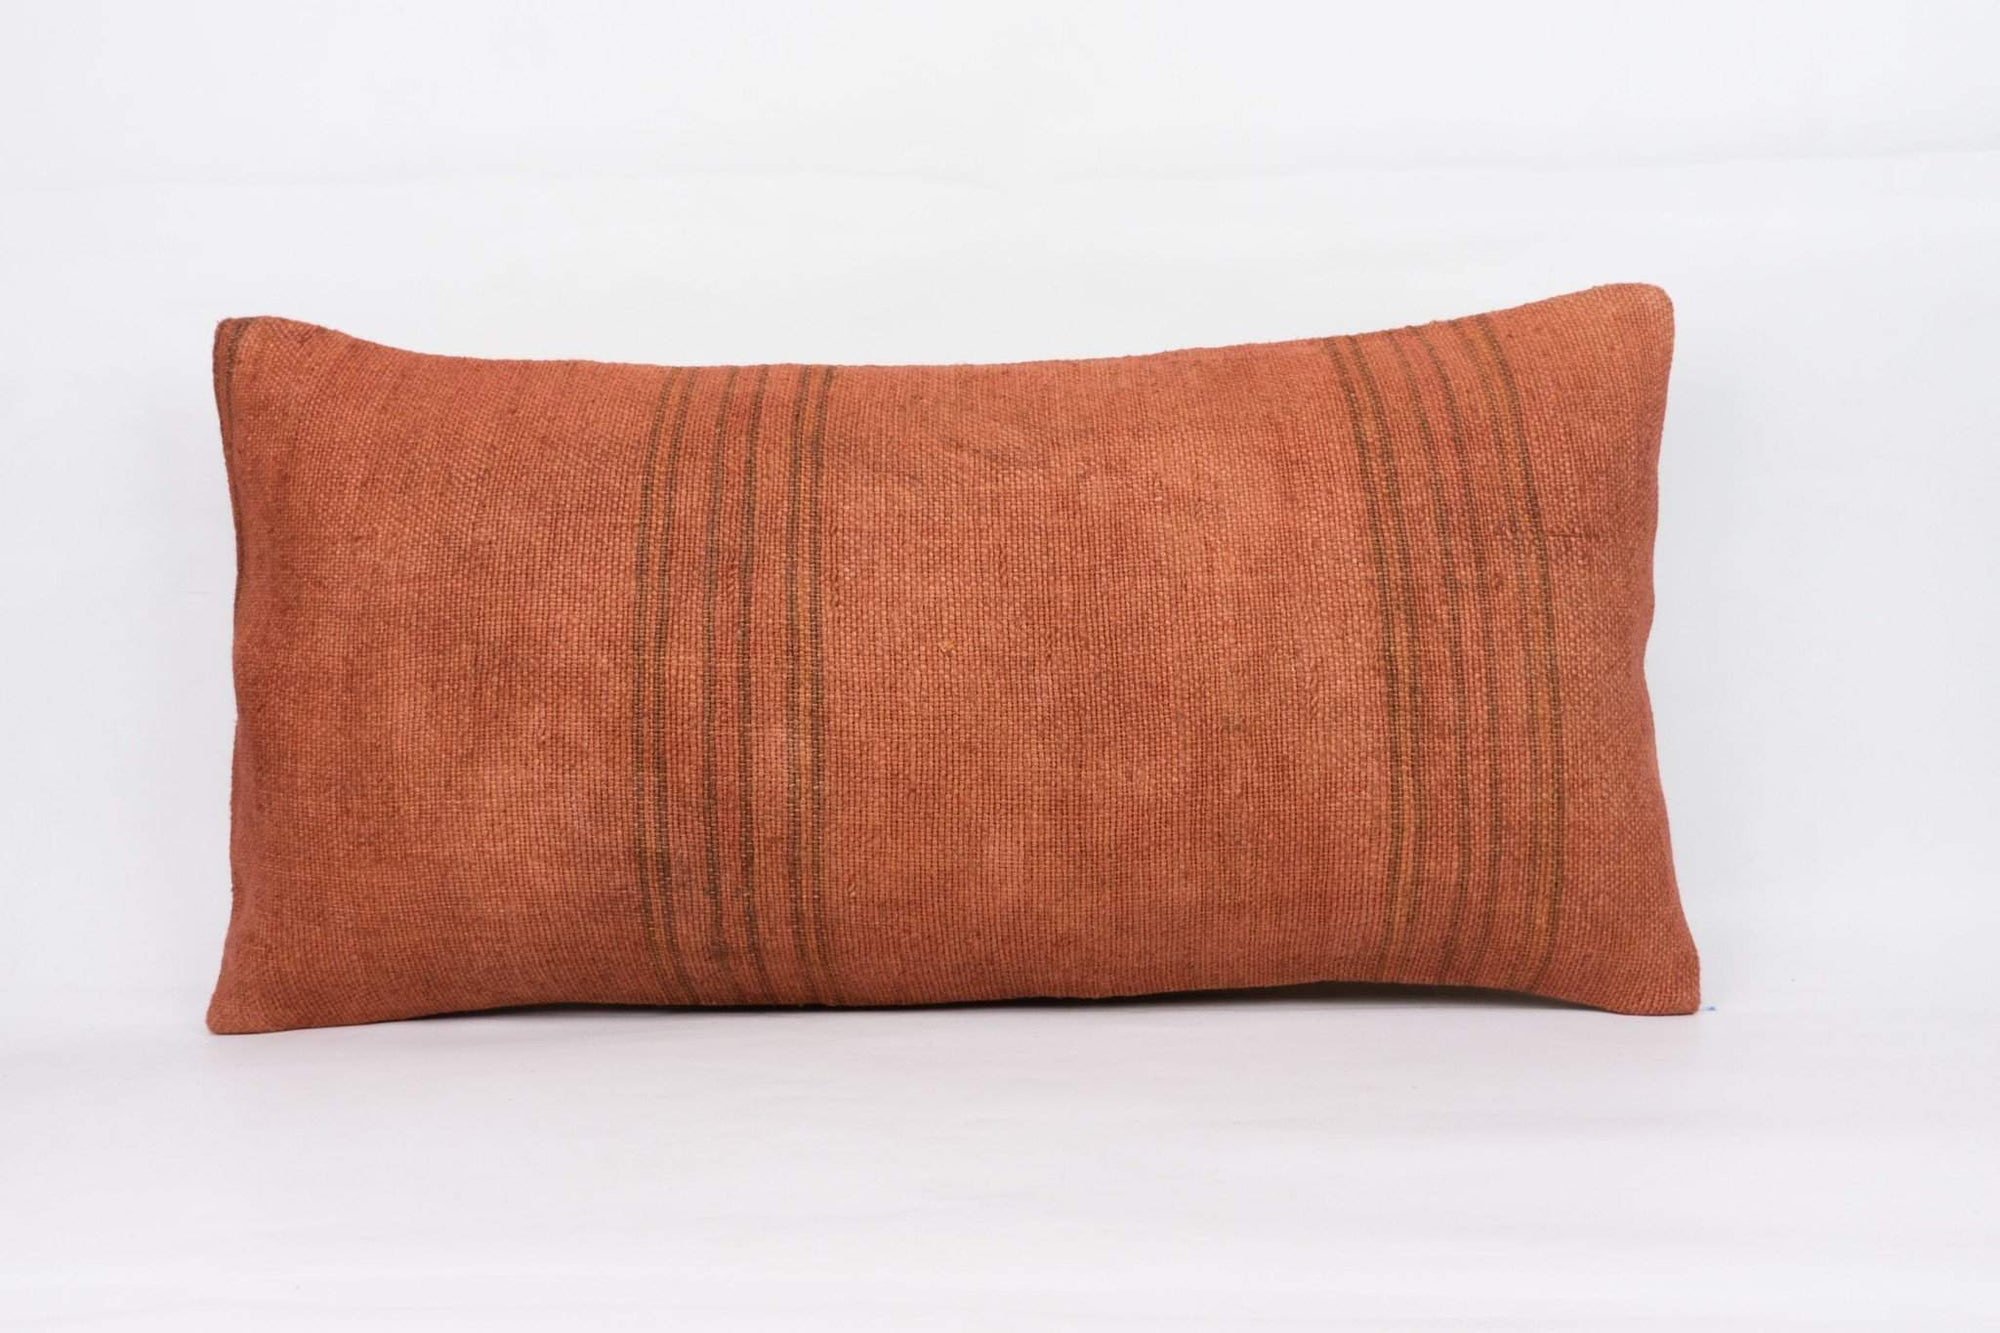 Plain Brown Kilim Pillow Cover 12x24 4183